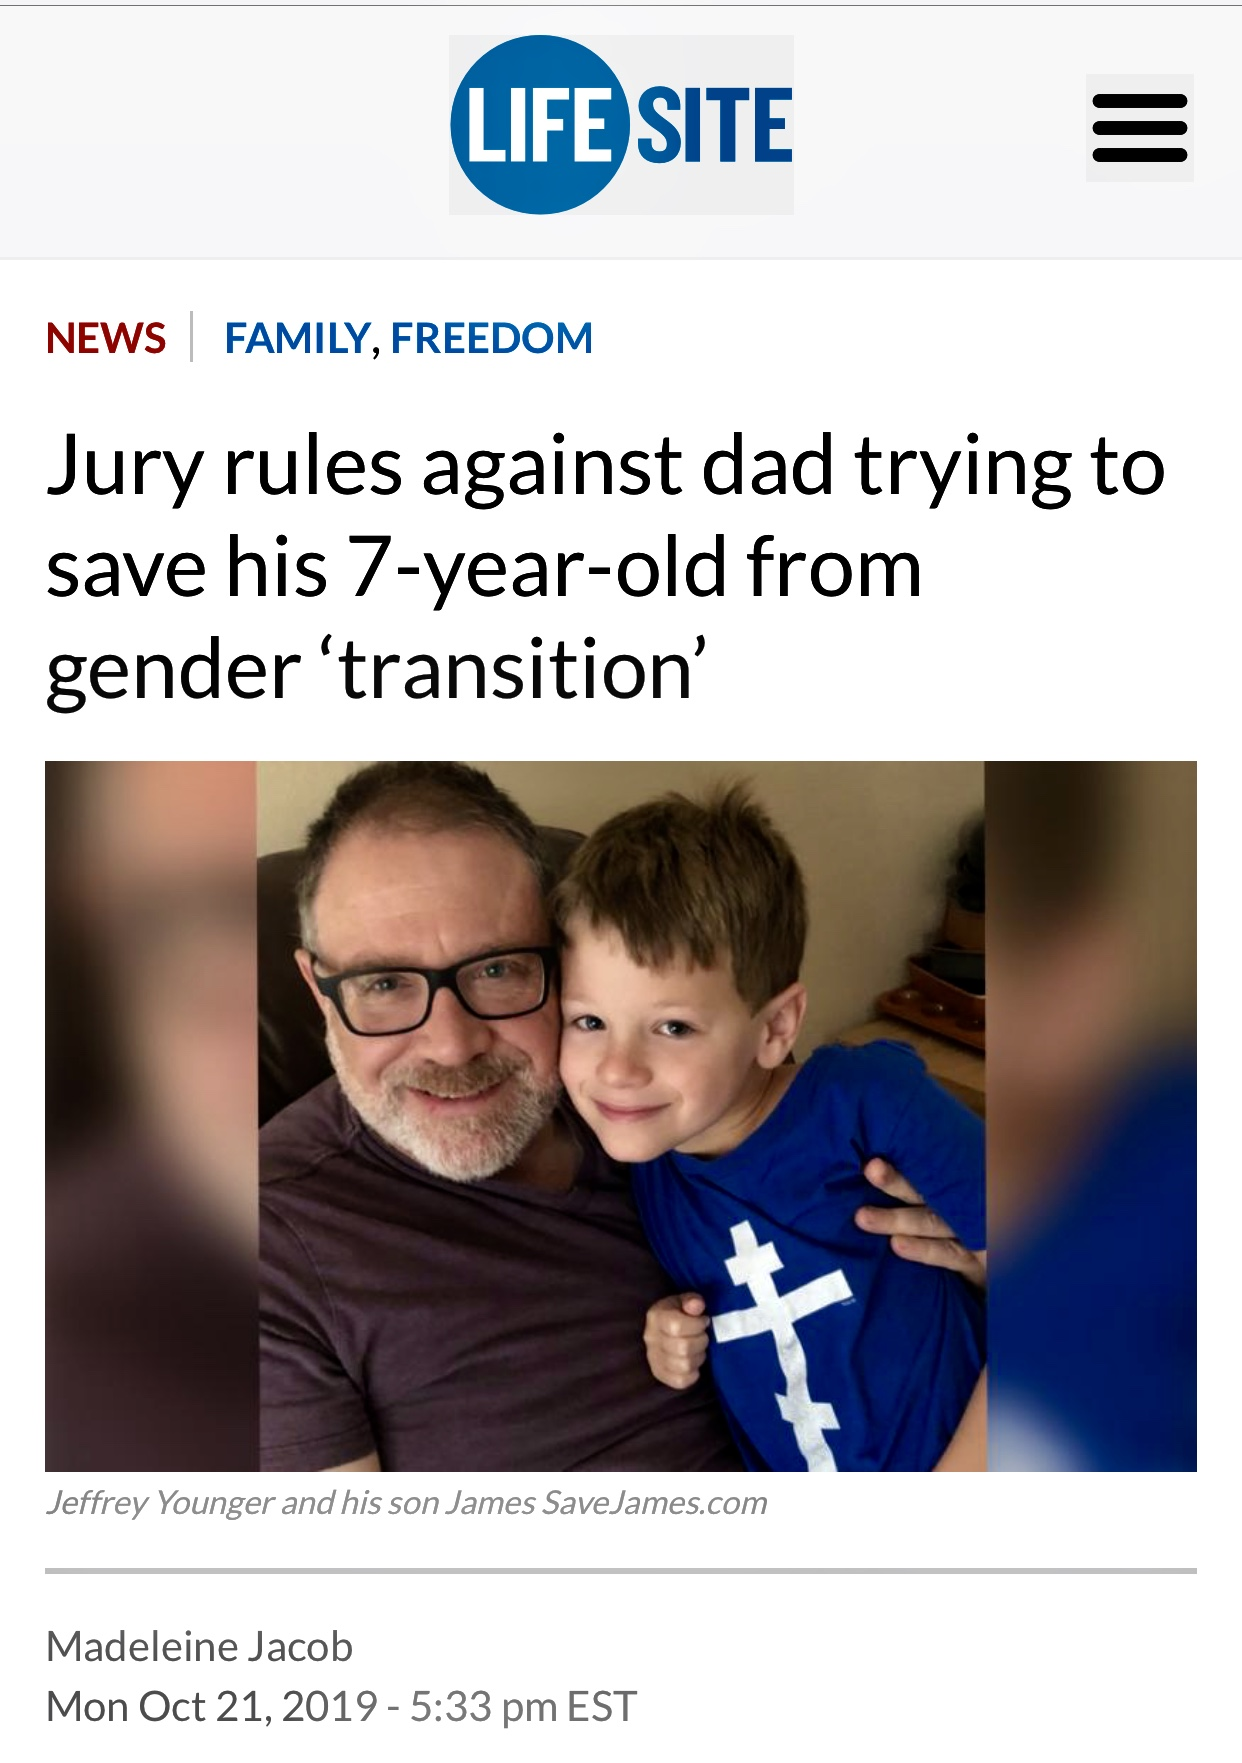 Jury rules against dad trying to save his 7-year-old from gender 'transition' | News | LifeSite